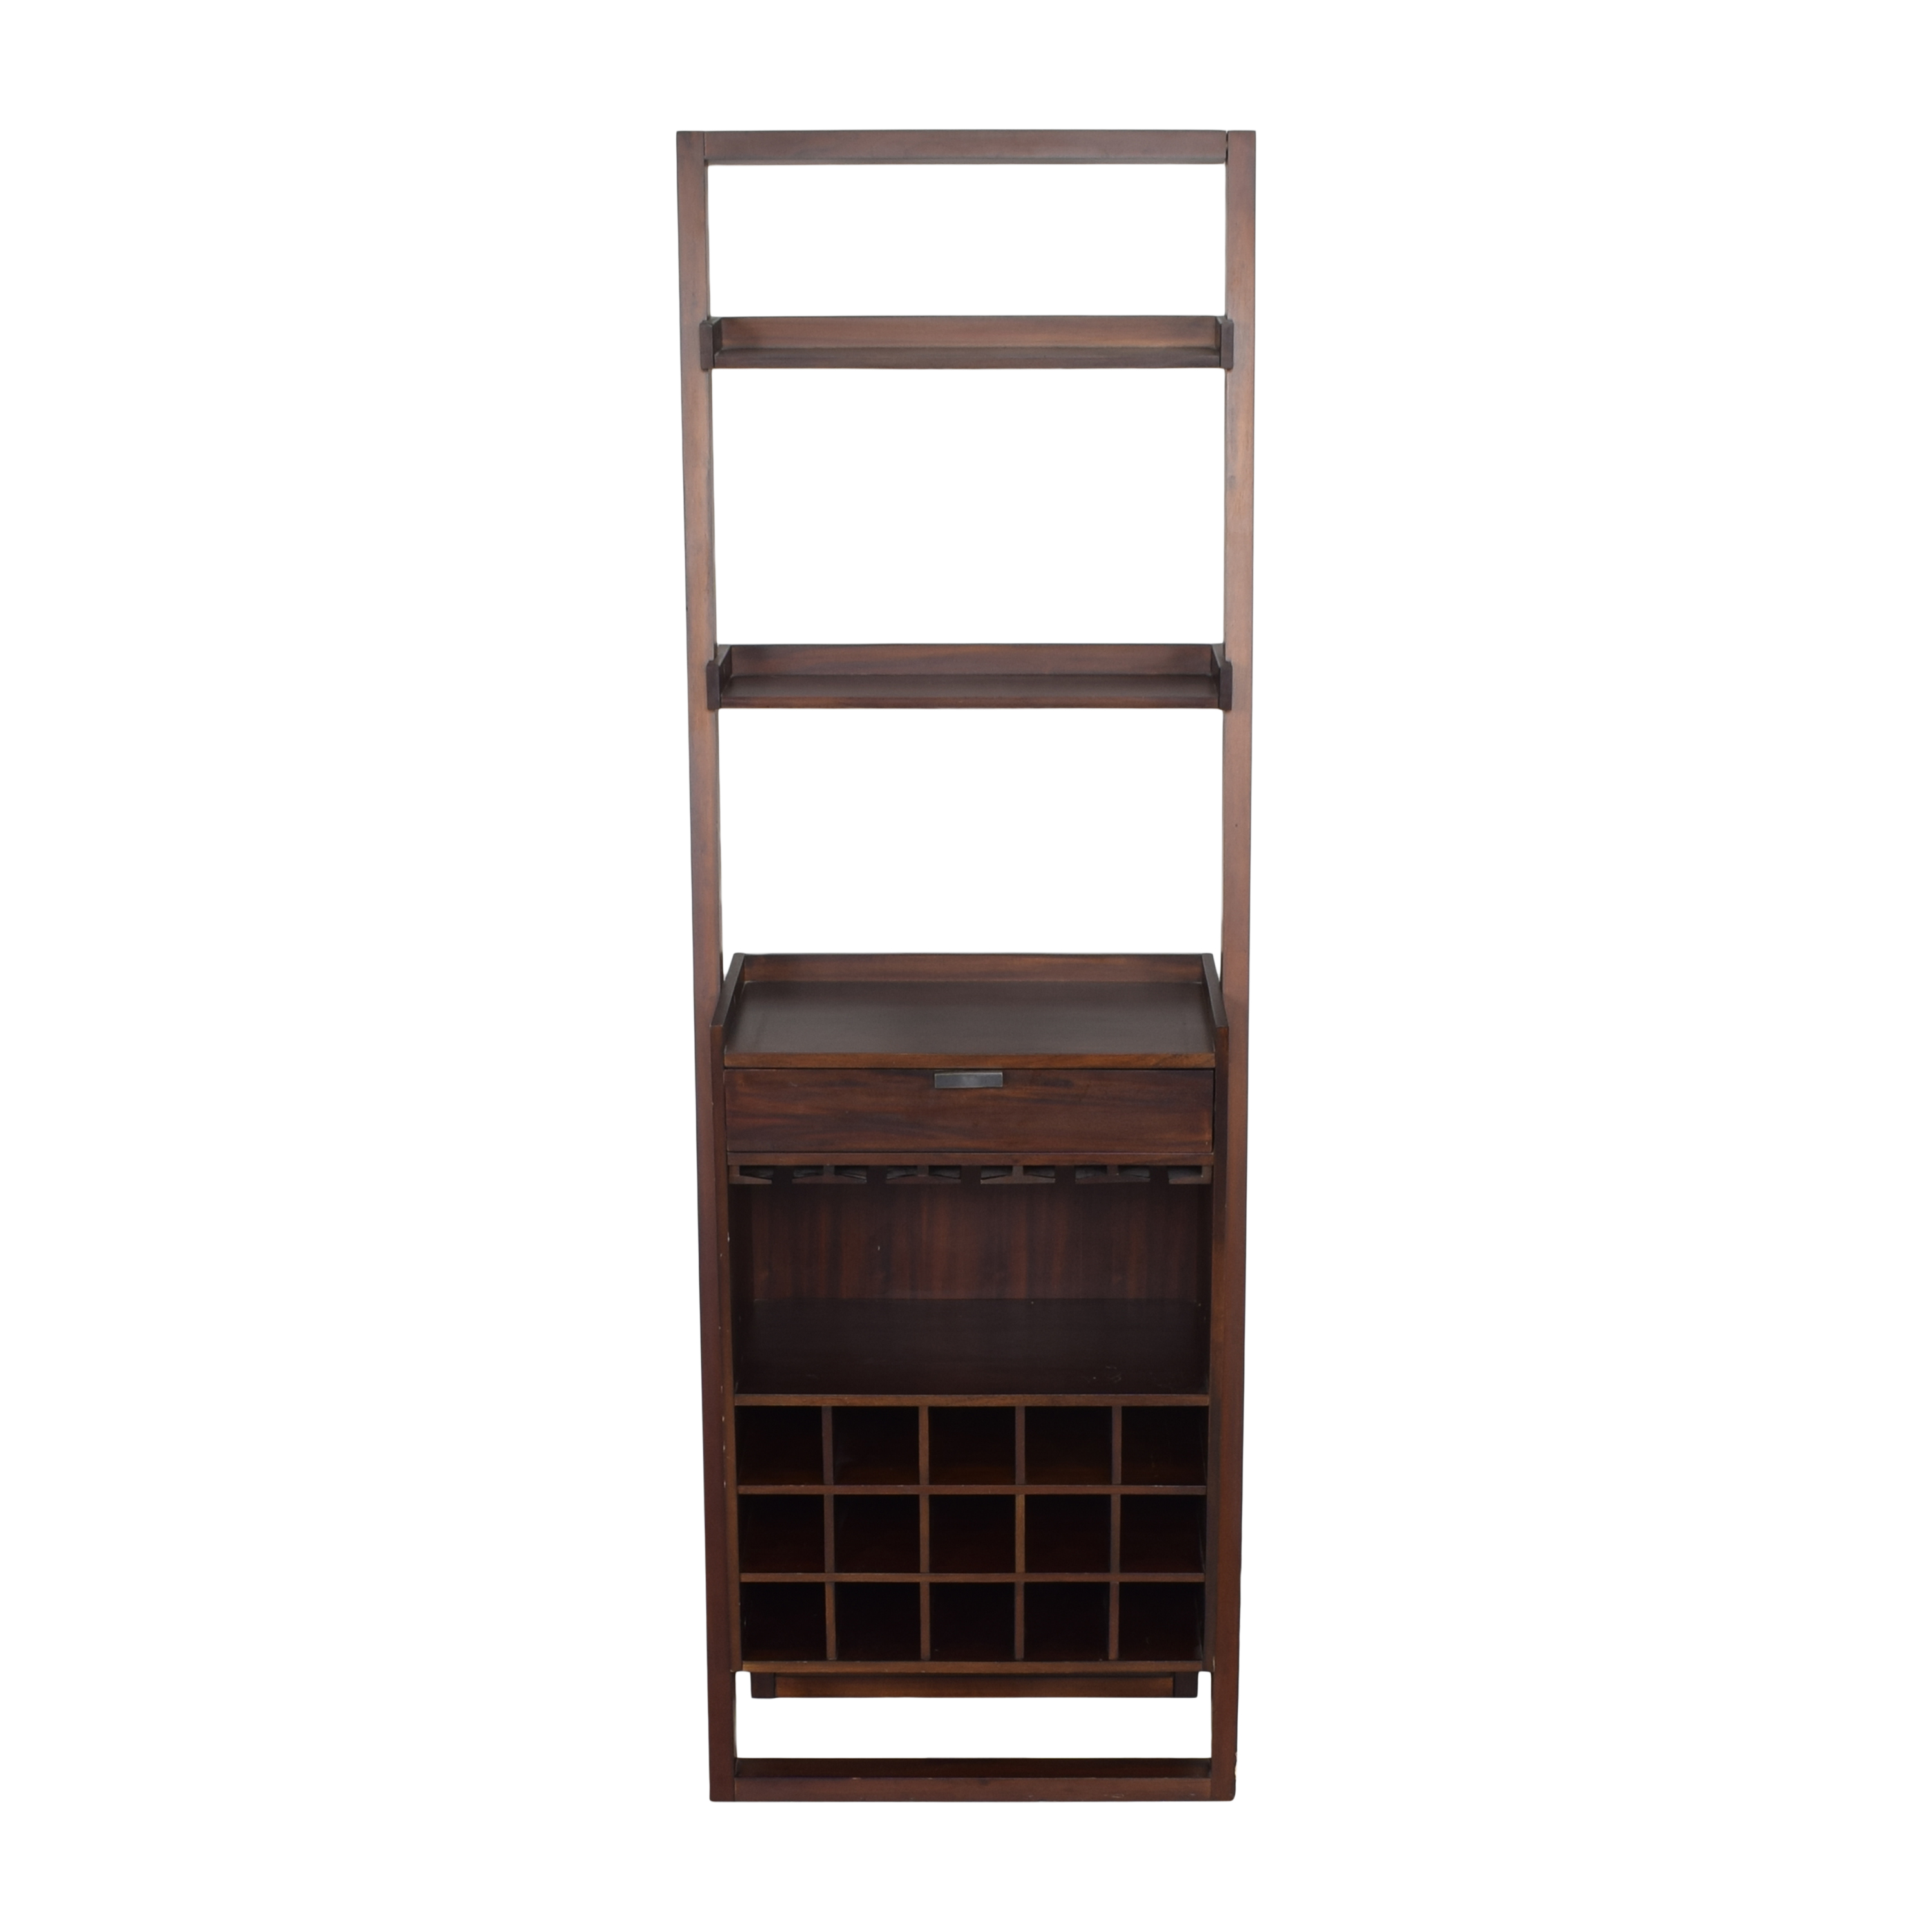 Crate & Barrel Crate and Barrel Sloane Leaning Wine Bar Bookcases & Shelving